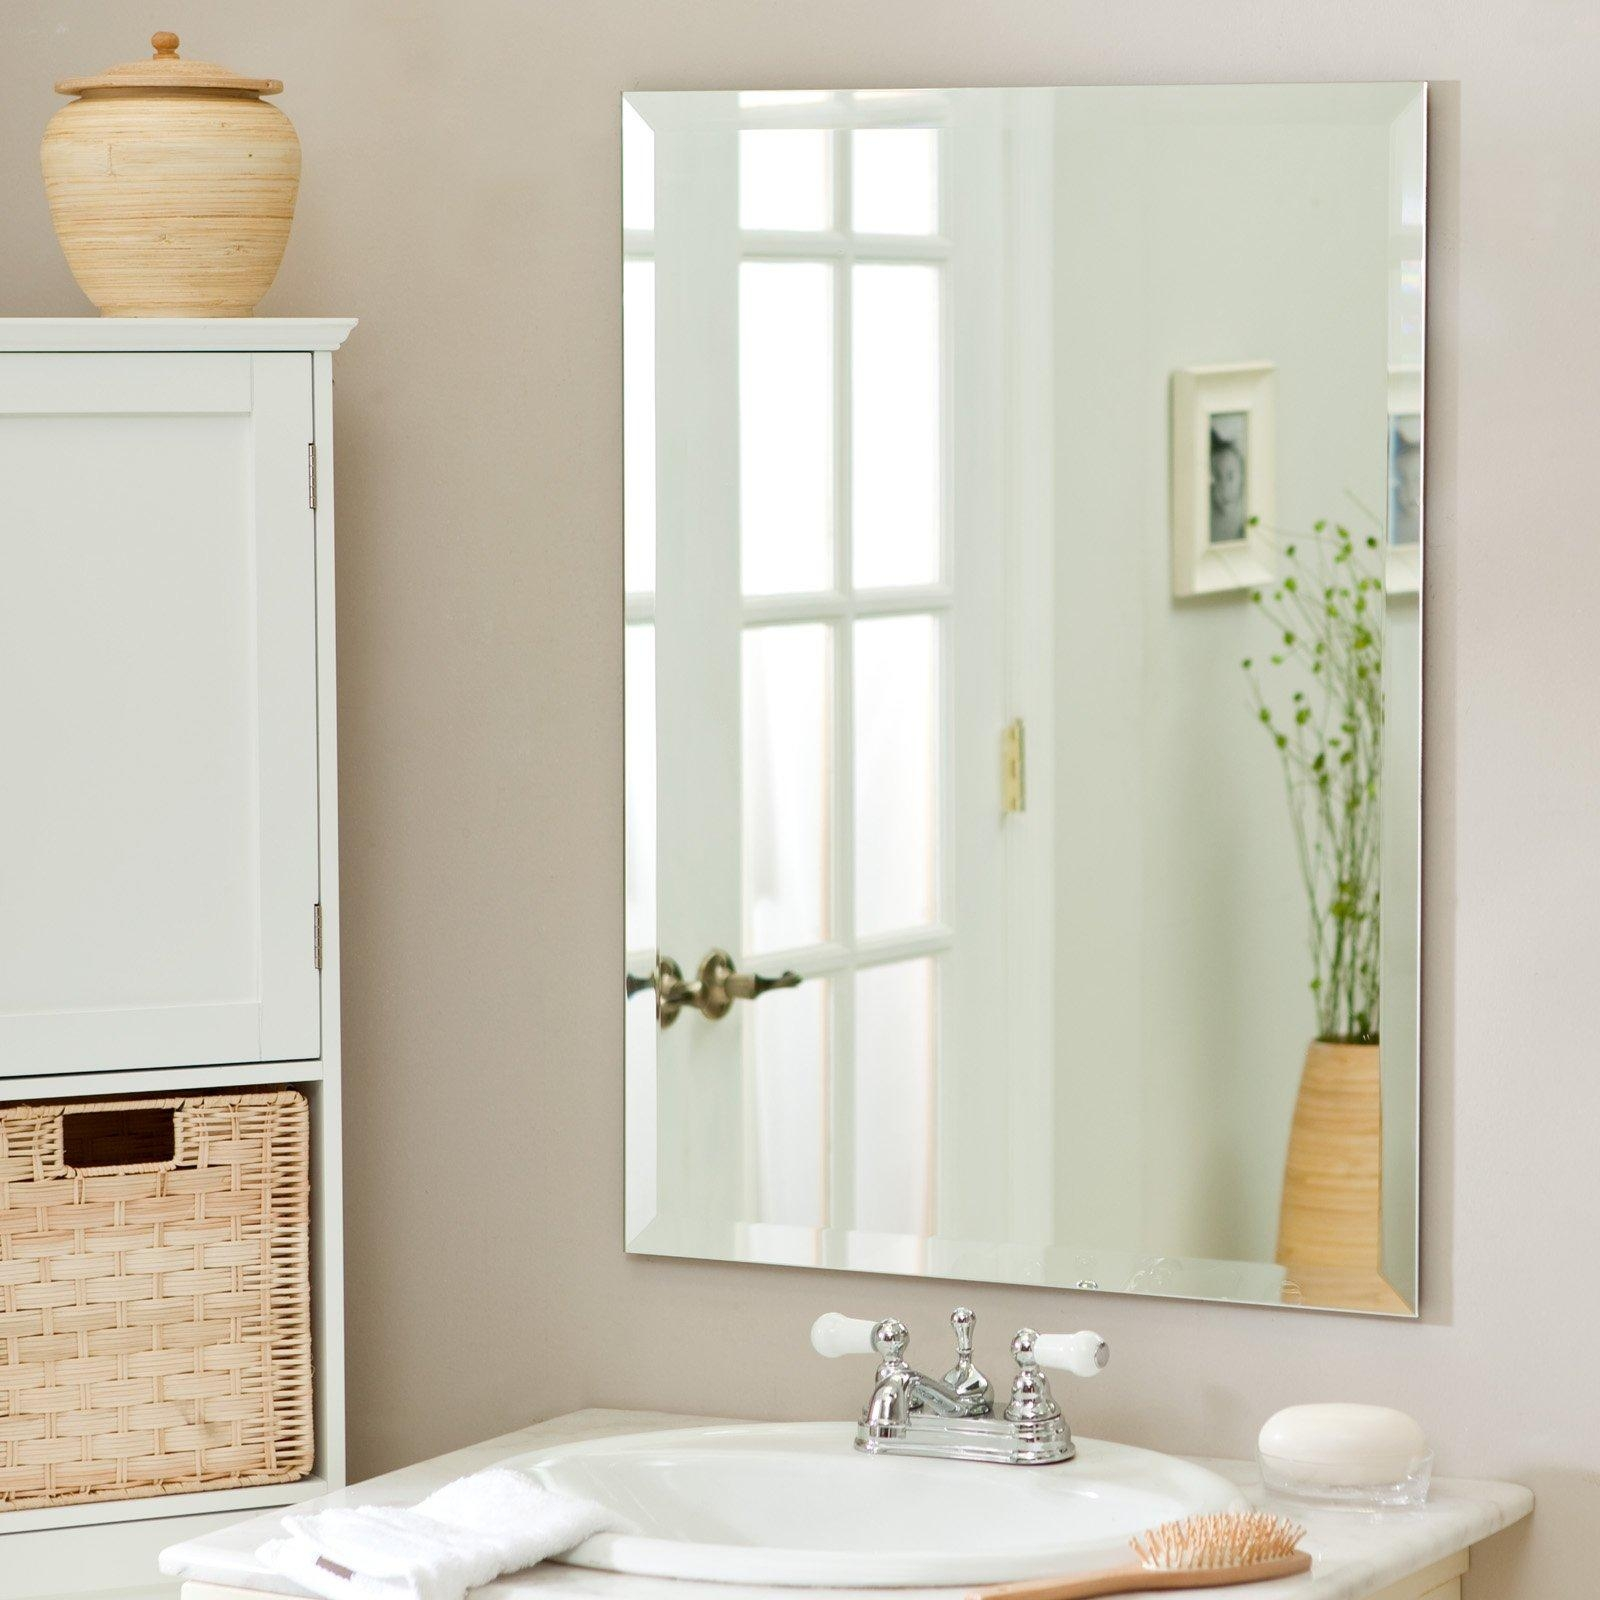 20 Small Bevelled Mirror Mirror Ideas